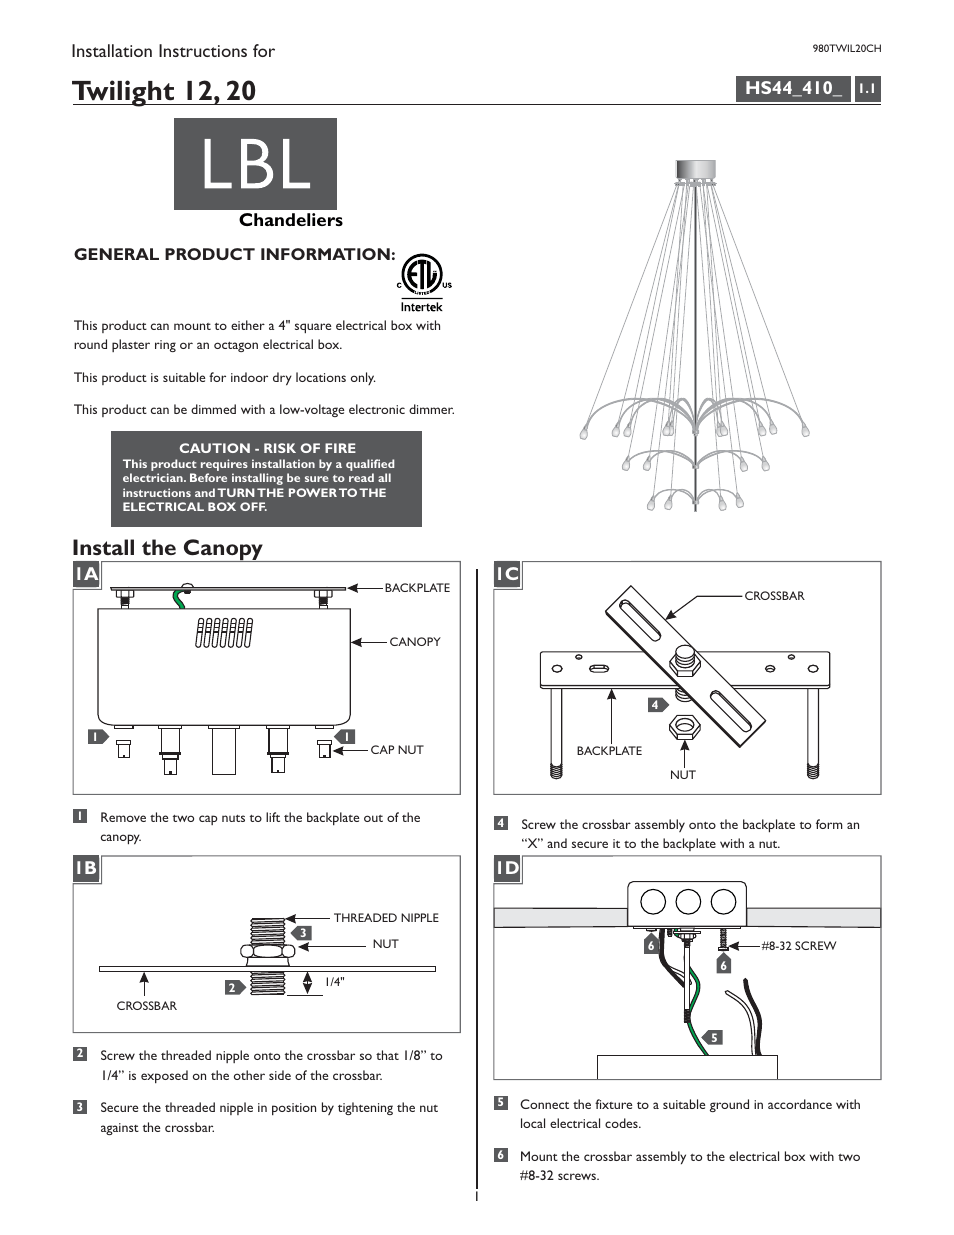 hight resolution of lbl lighting twilight 20 chandelier user manual 8 pages also for twilight 12 chandelier